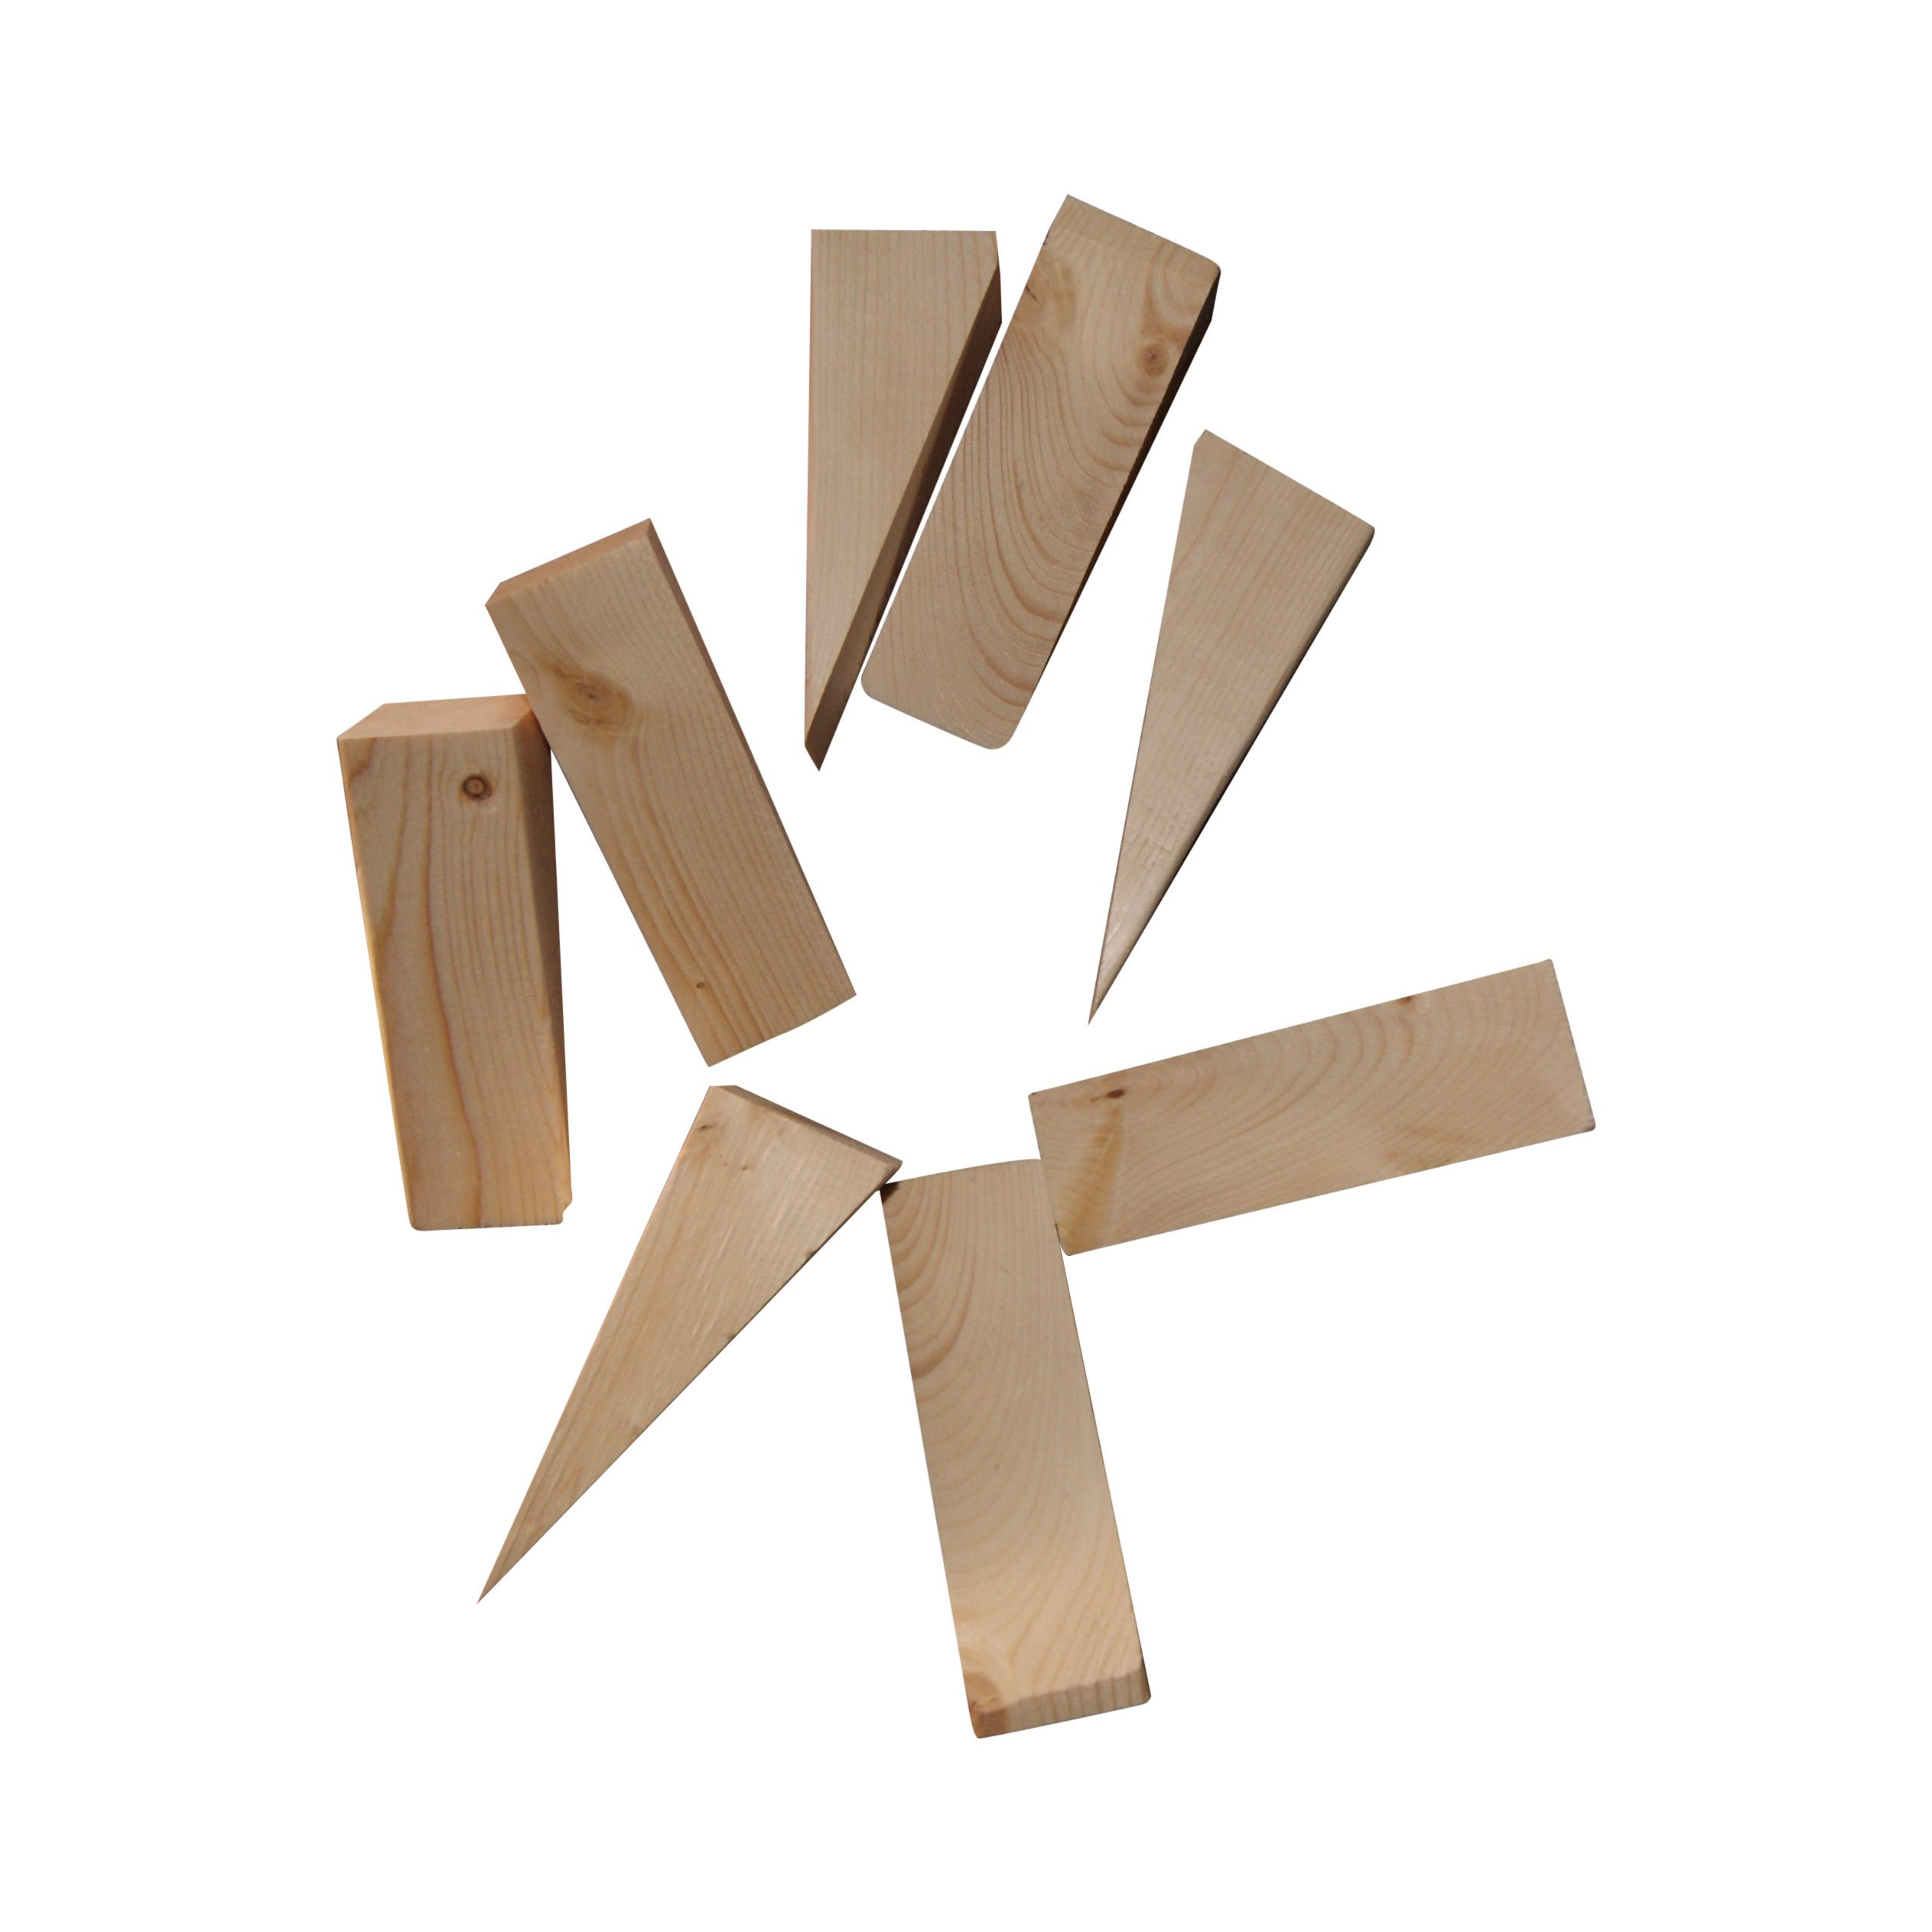 Wooden Non Slip Door Stop Stopper Wedge 8 Pack Of Stoppers Hand Made For All Surfaces Home & Office Woodgrain by Grant's Garage (Image #2)